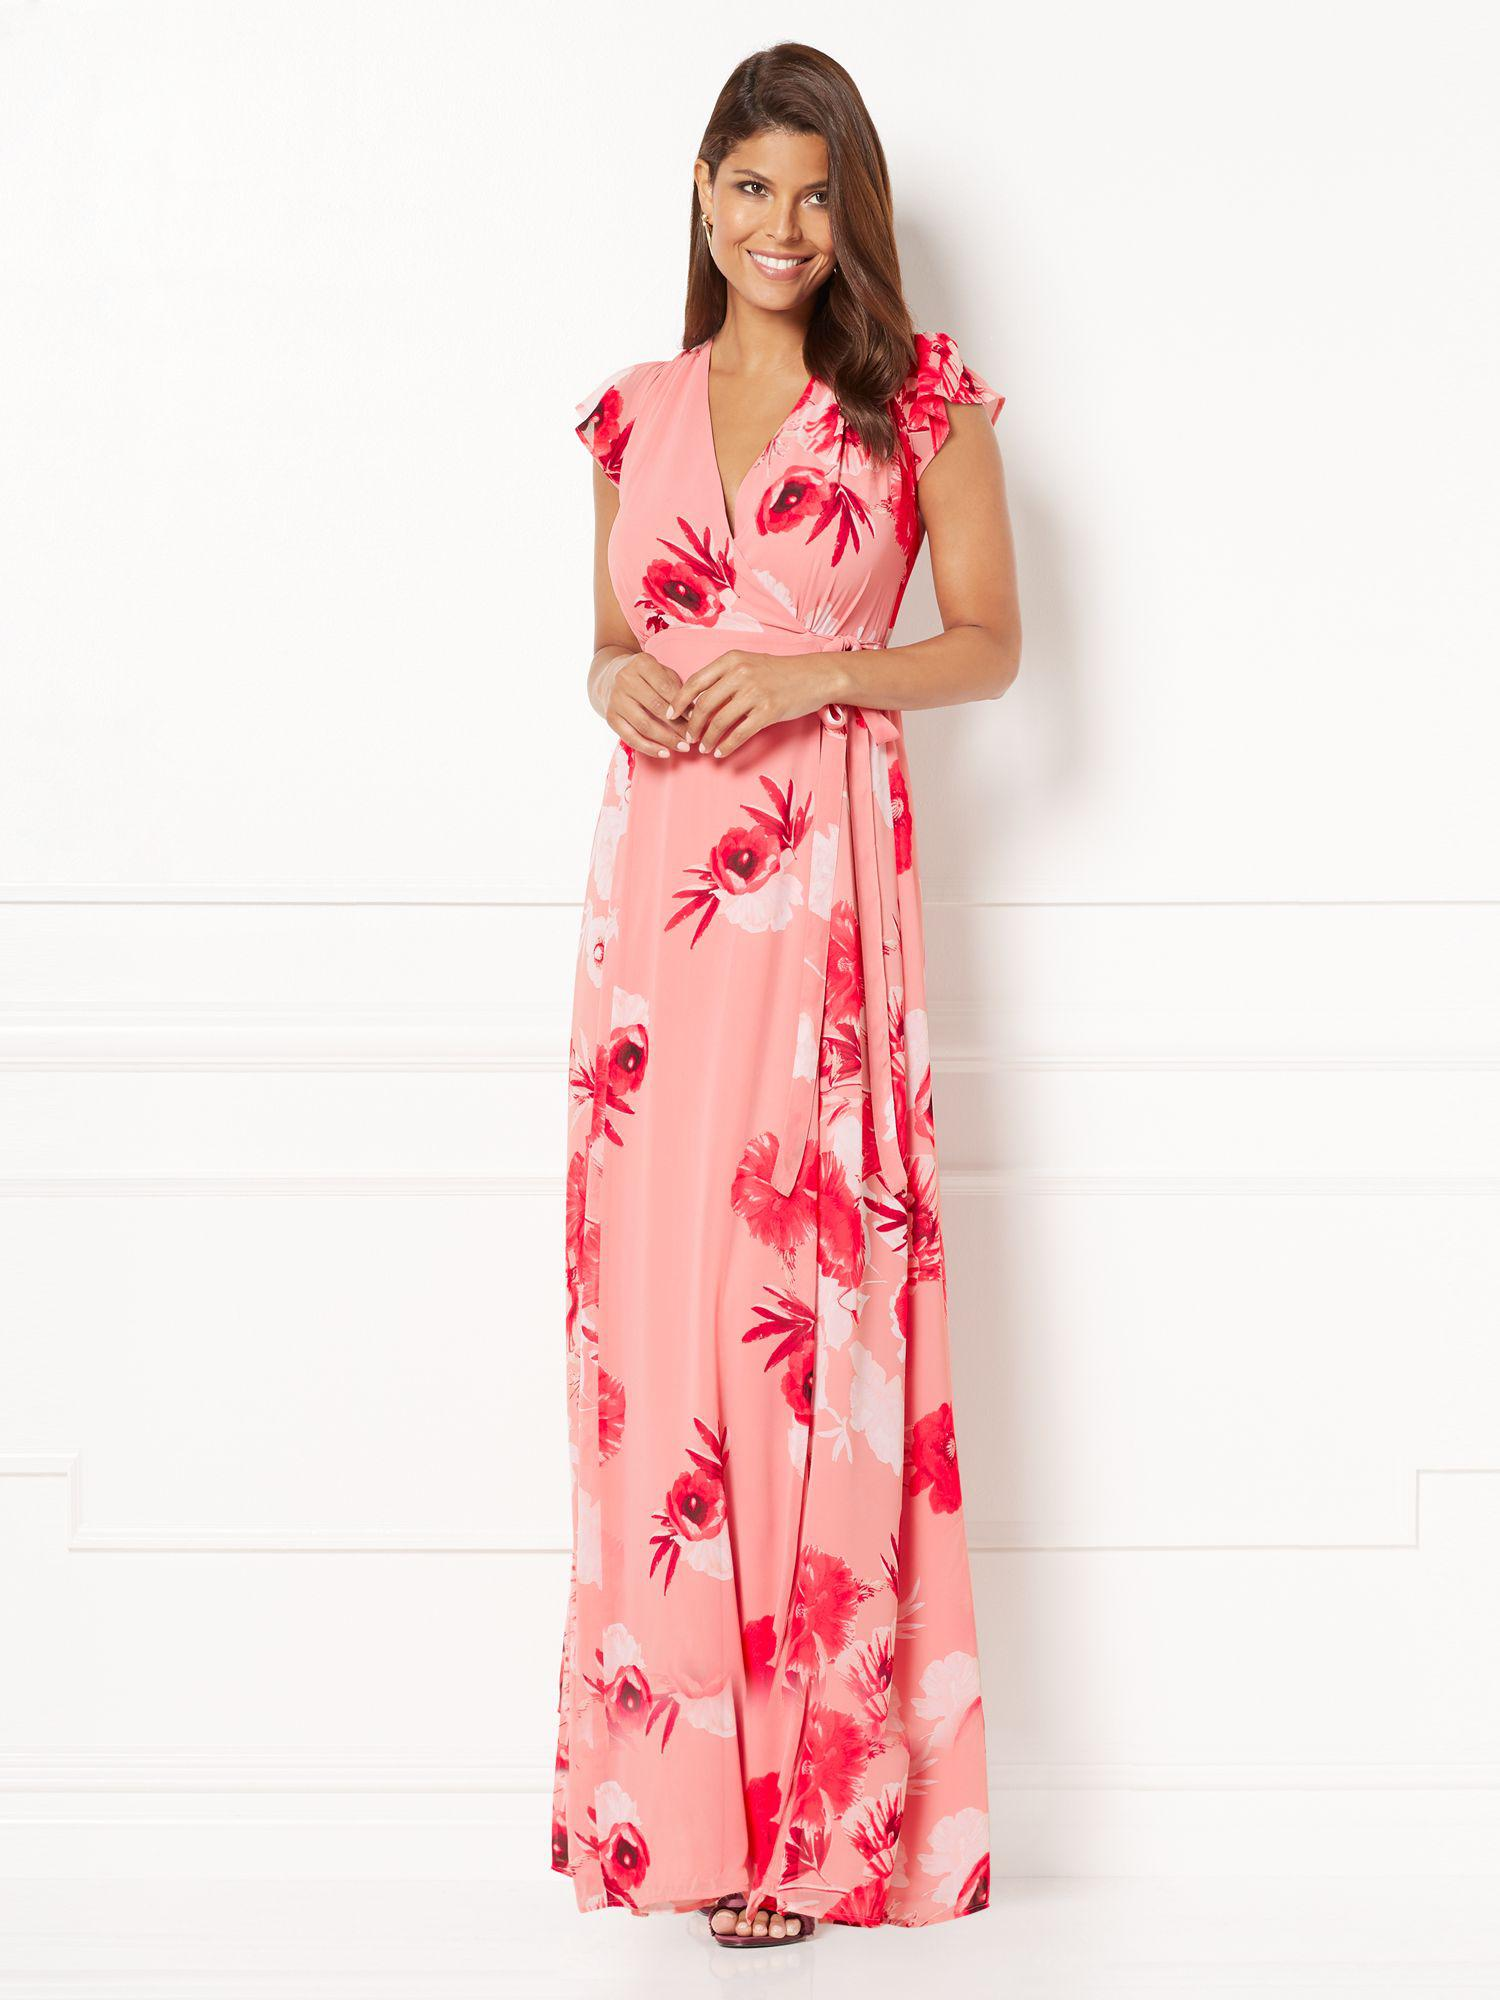 e1130b9dd24 Lyst - New York   Company Eva Mendes Collection - Allison Wrap Dress ...